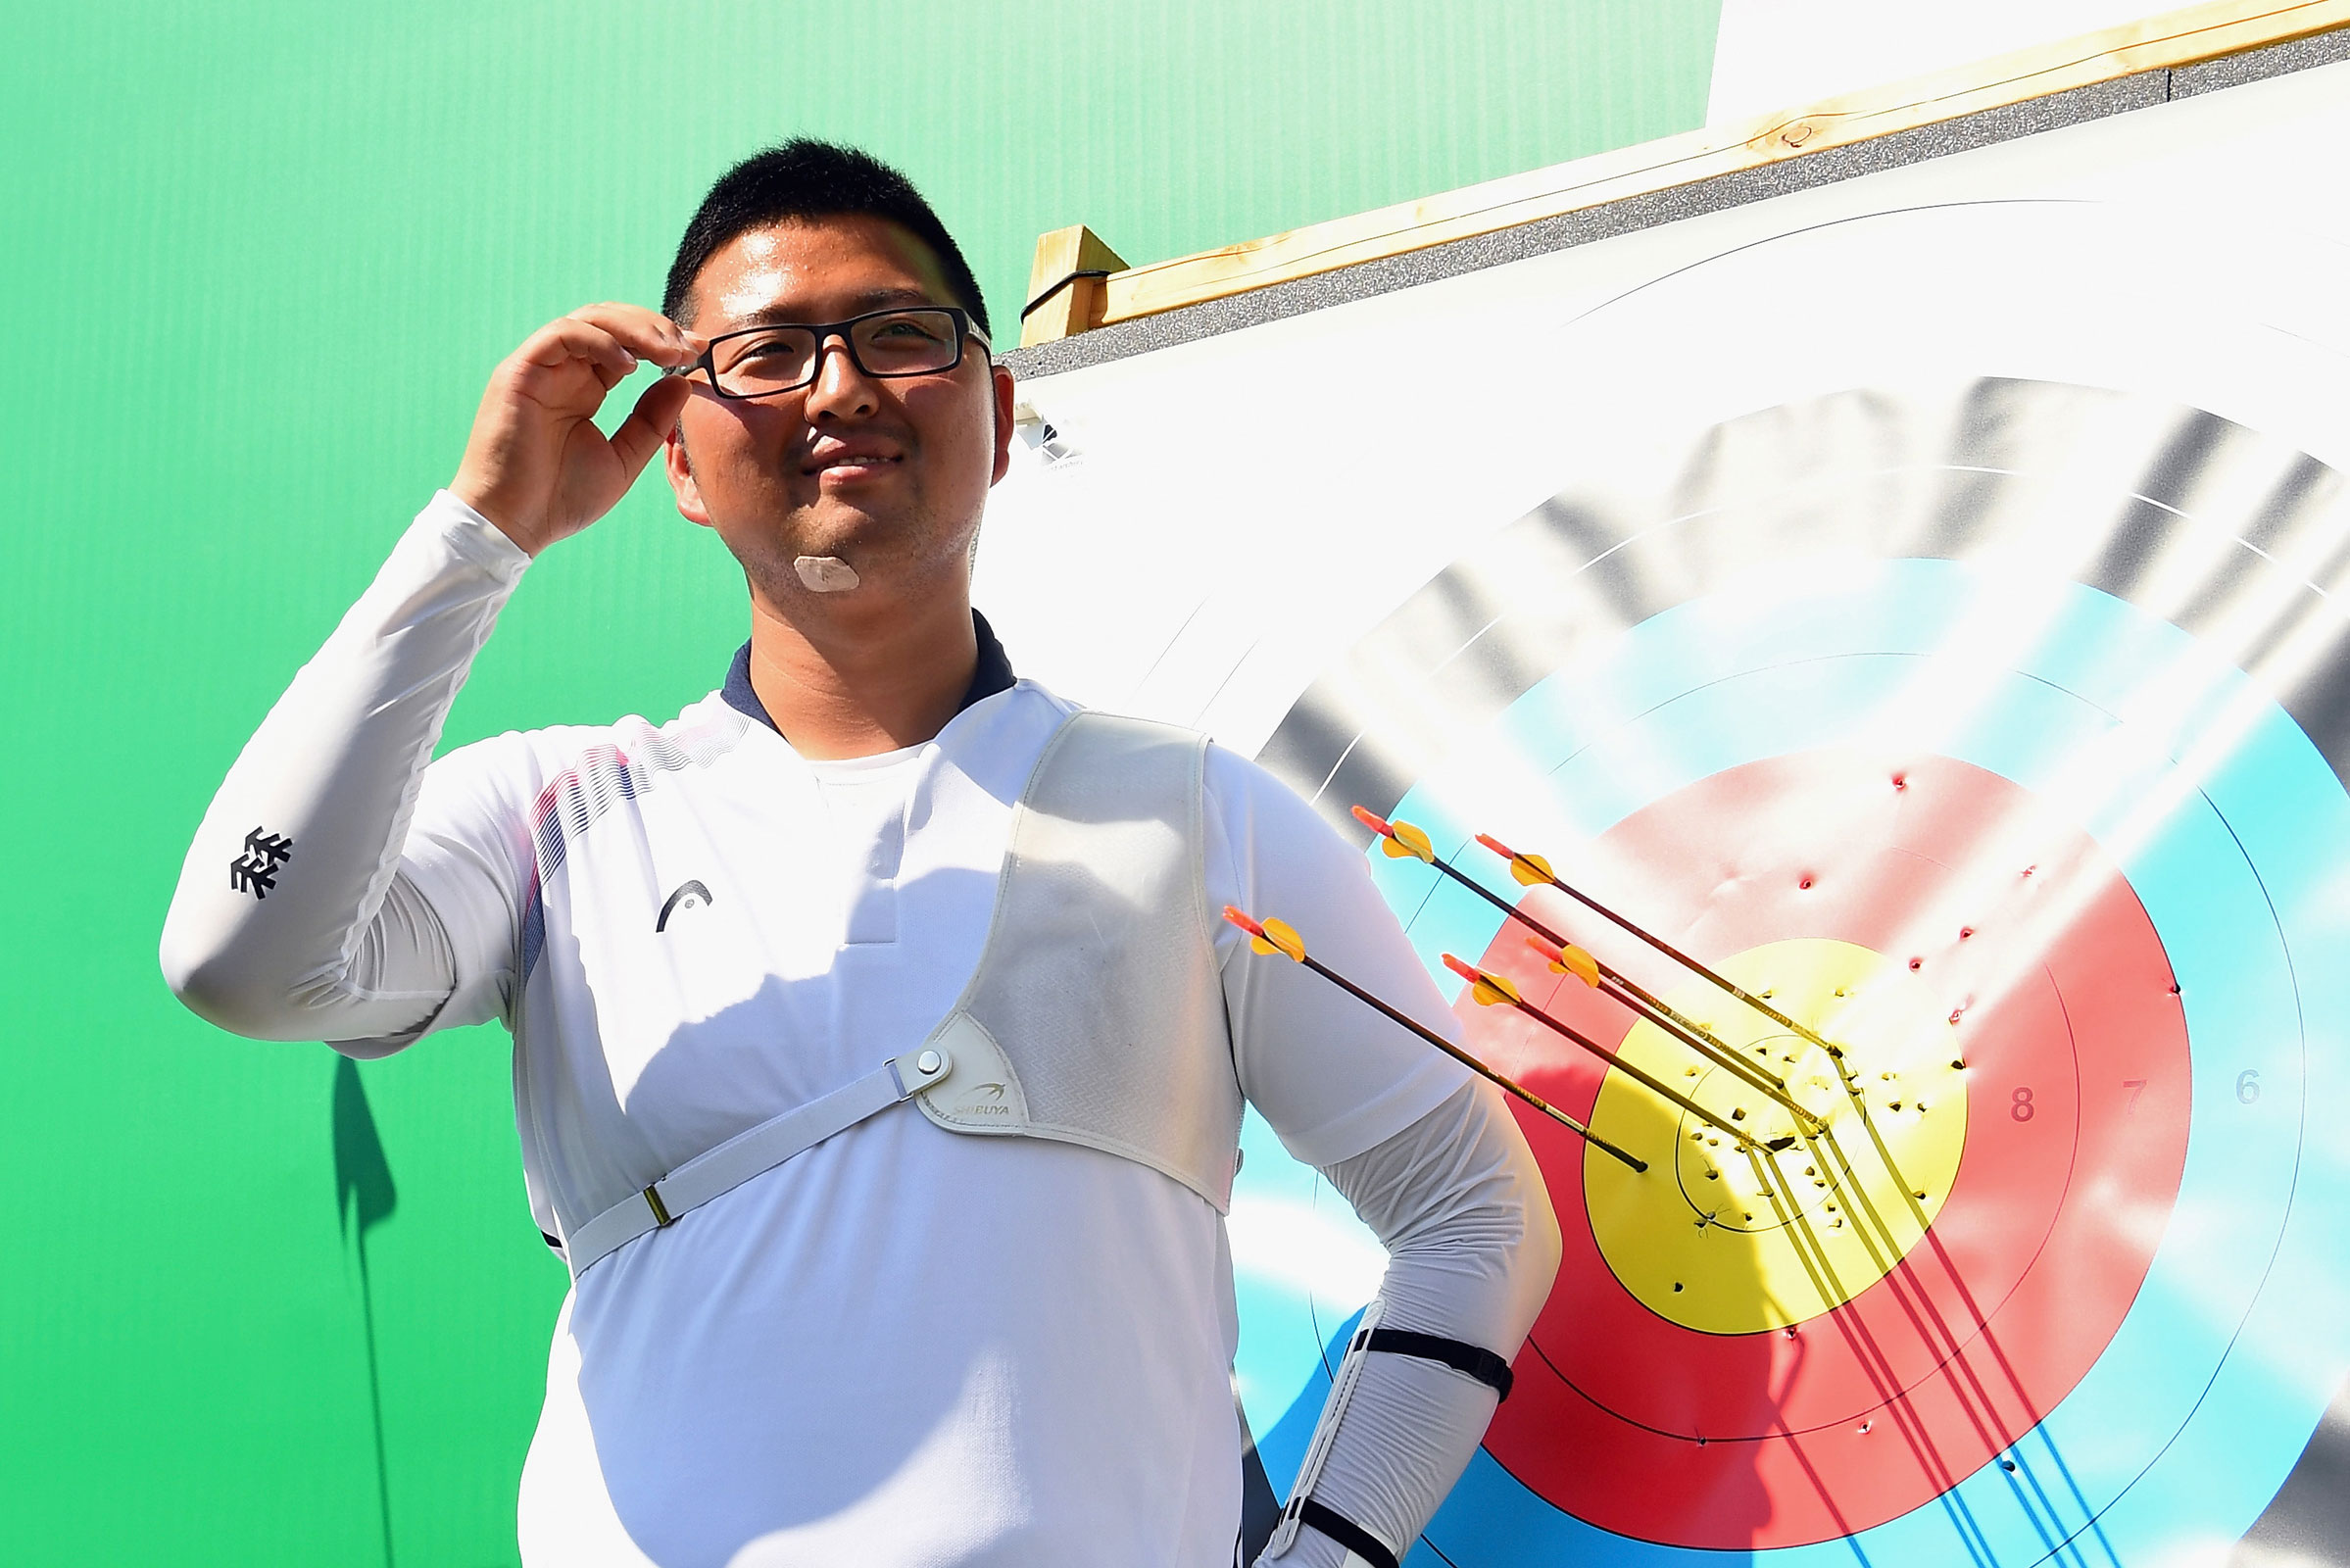 Men's Individual Archery - Ranking Round